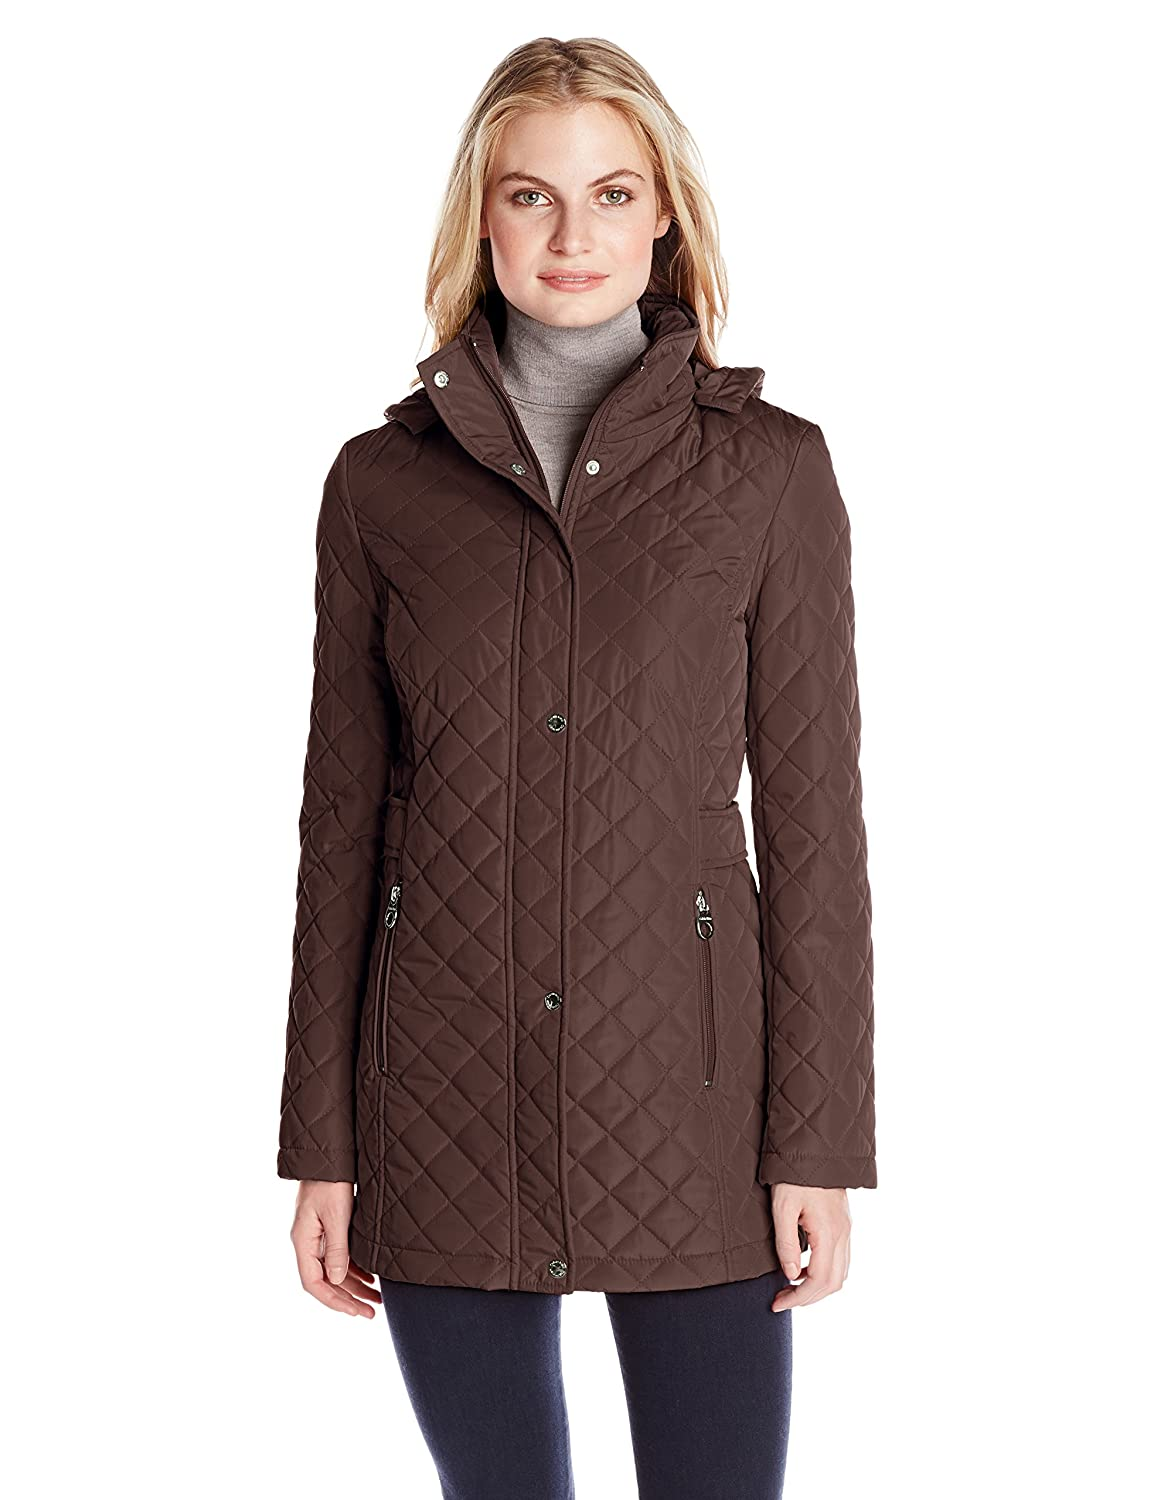 Womens Quilted Lightweight Jackets | Amazon.com : black quilted ladies jacket - Adamdwight.com